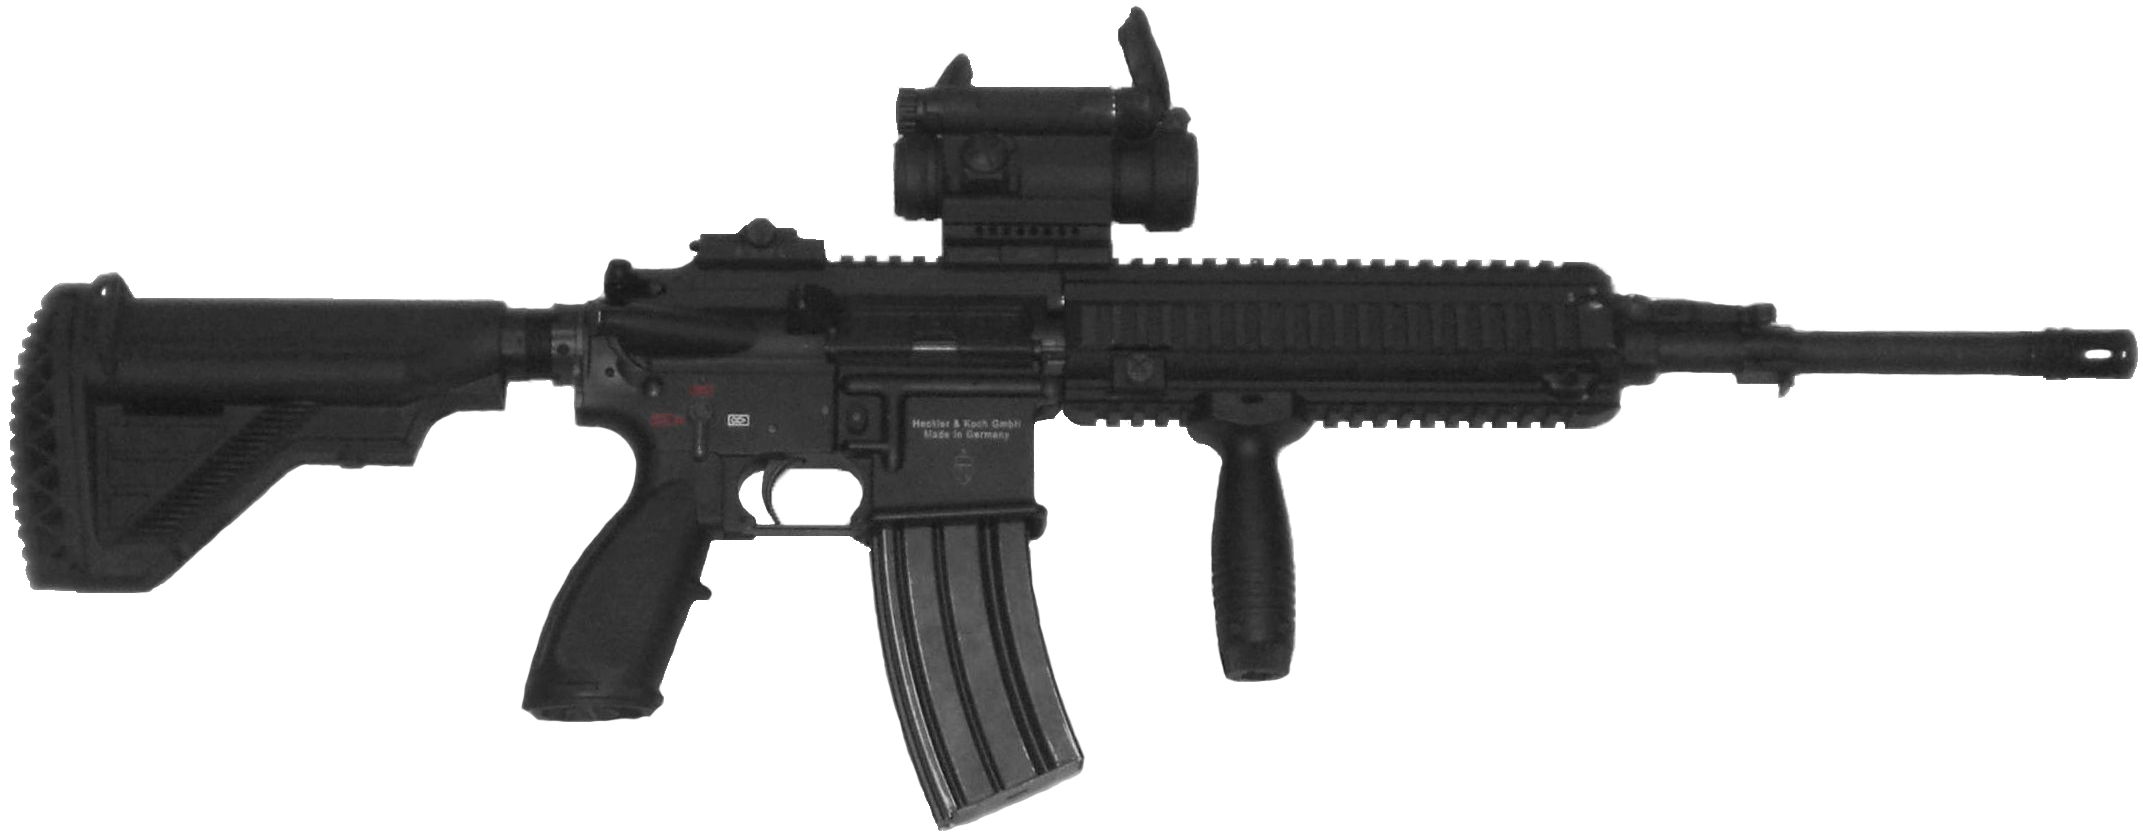 Black Assault Rifle PNG Image